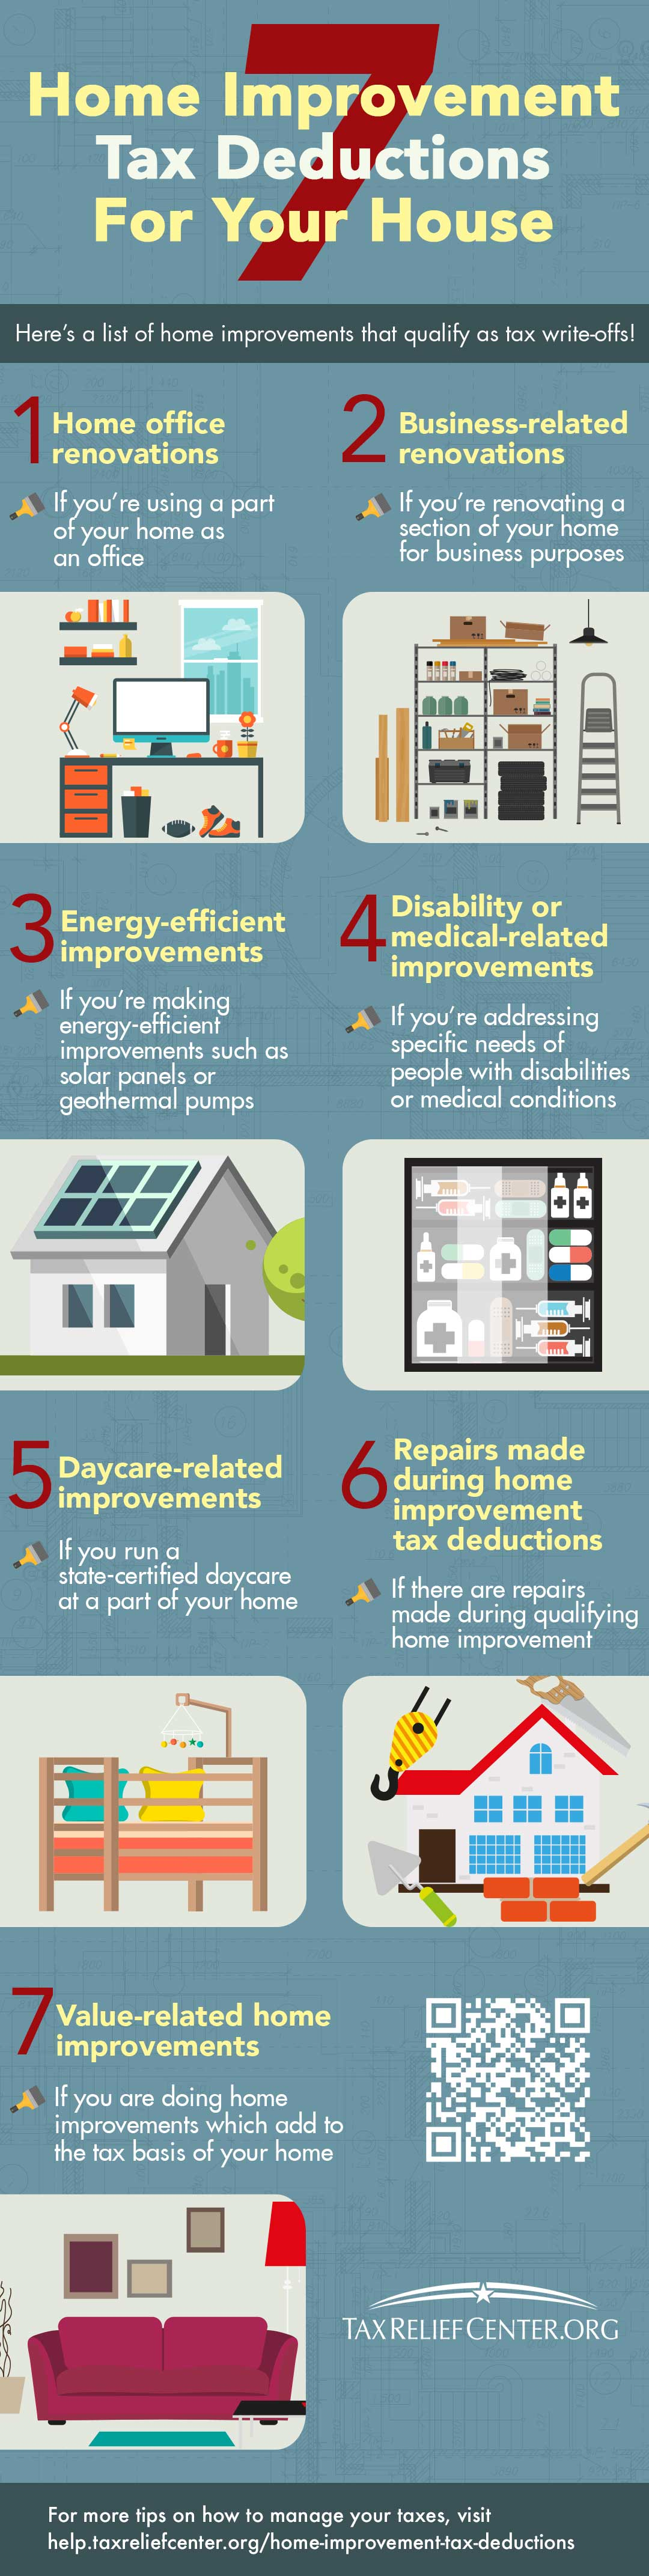 7 Home Improvement Tax Deductions for Your House [INFOGRAPHIC] | https://help.taxreliefcenter.org/home-improvement-tax-deductions/